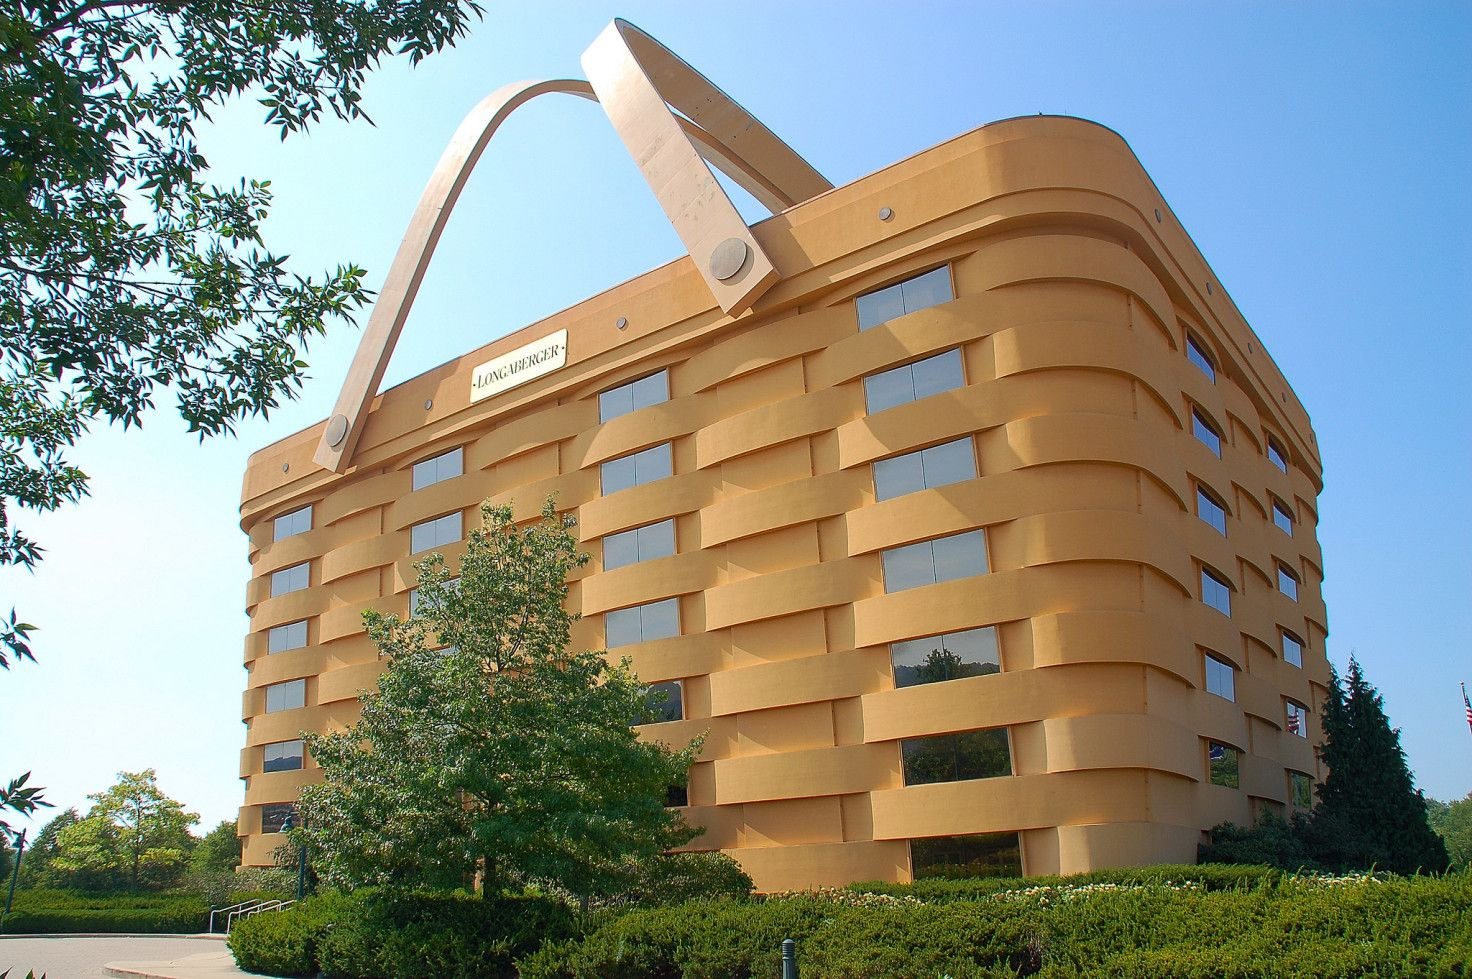 The 30 weirdest roadside attractions in America: Longaberger Basket Building